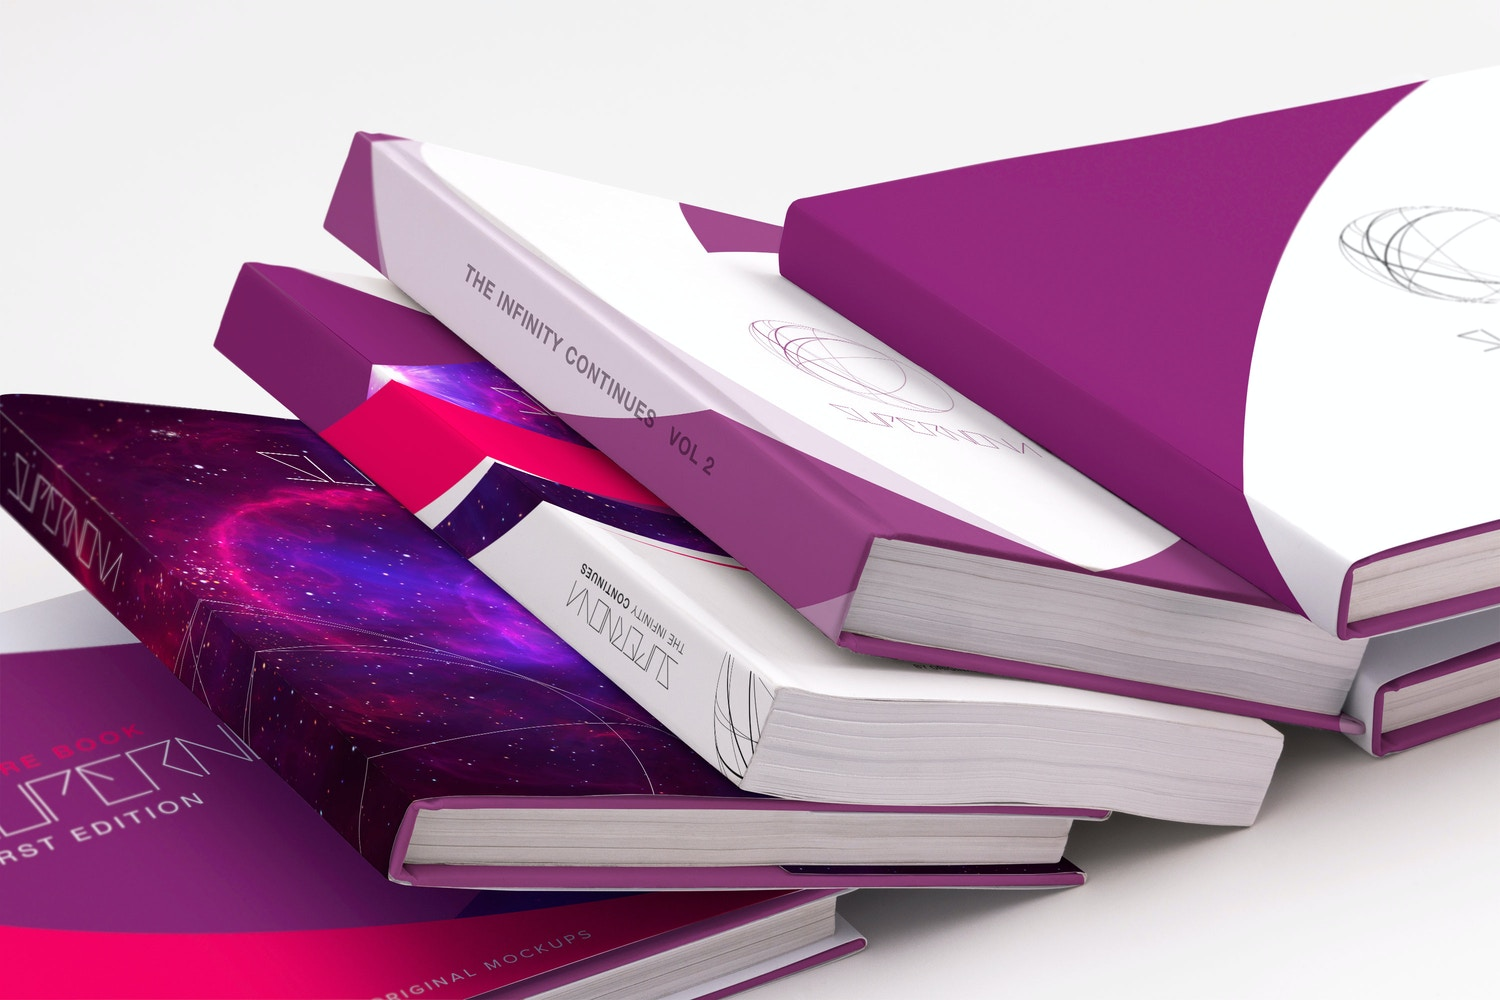 Others Books PSD Mockup 04 by Original Mockups on Original Mockups